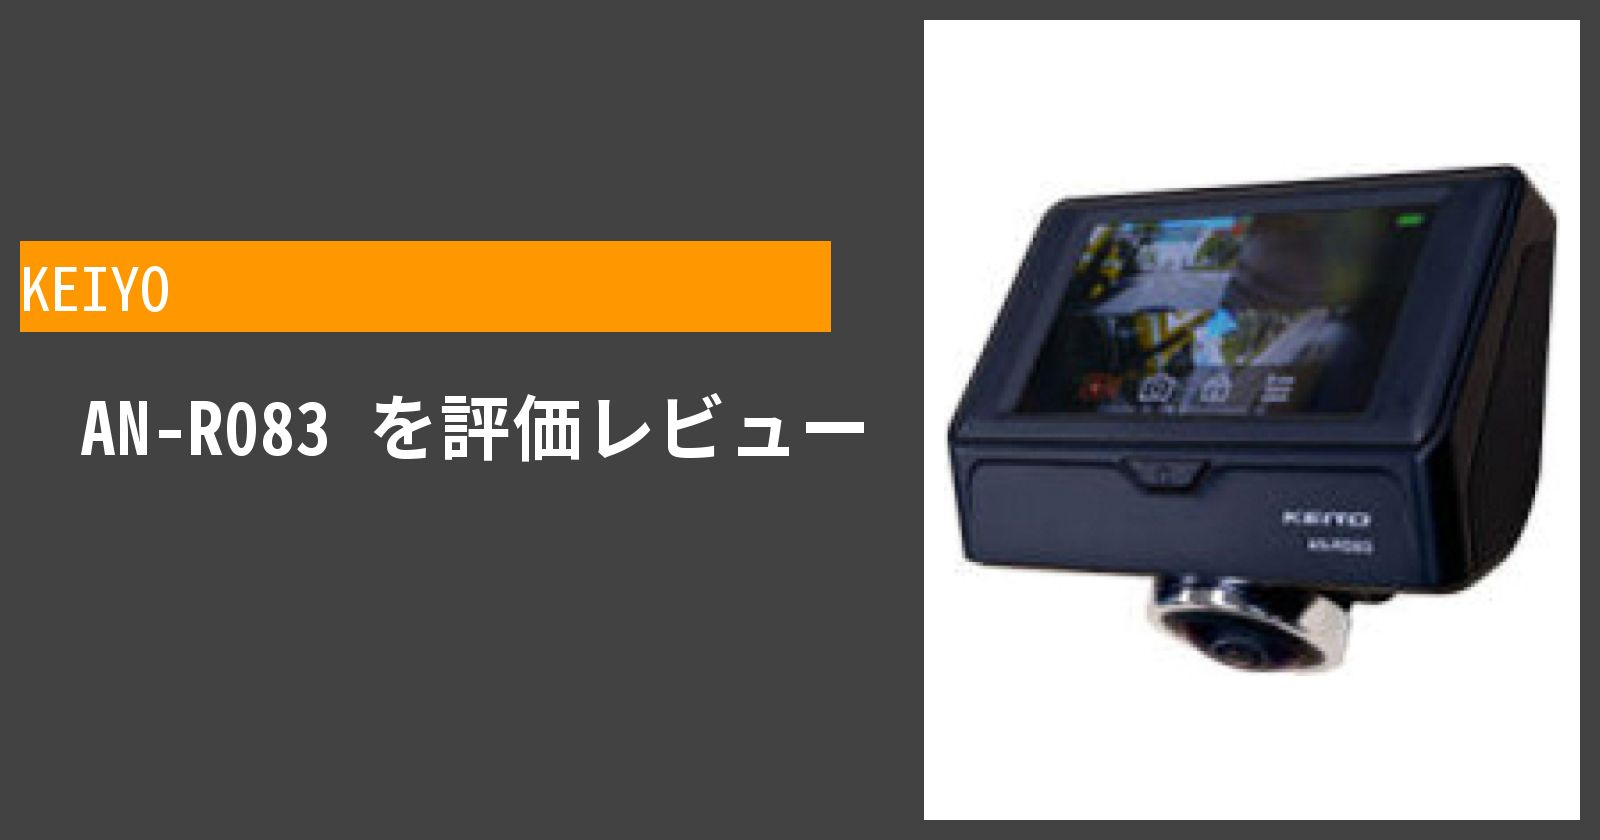 AN-R083を徹底評価